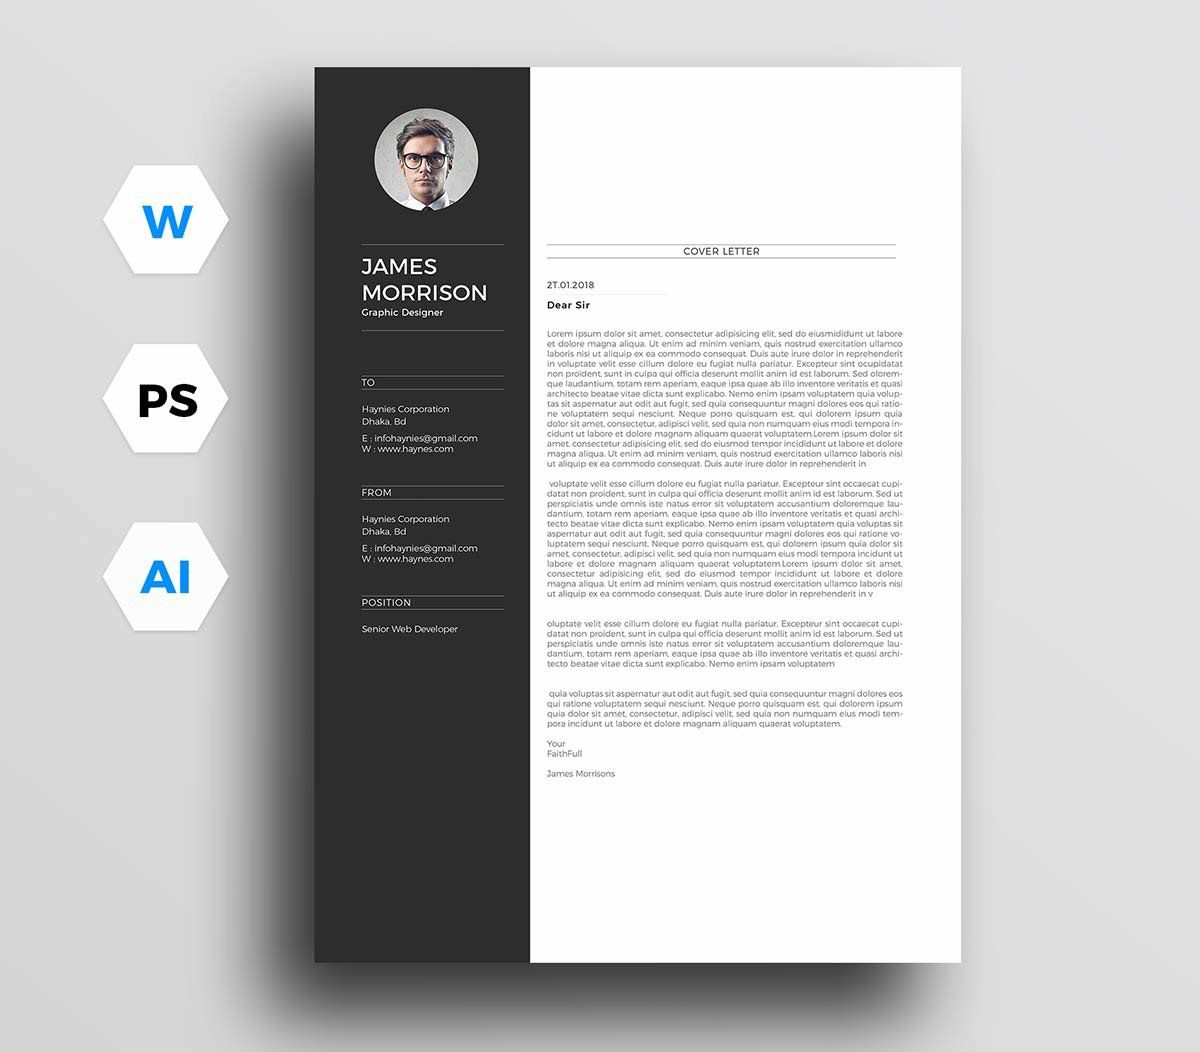 000 Phenomenal Cover Letter Free Template Idea  Download Word DocFull